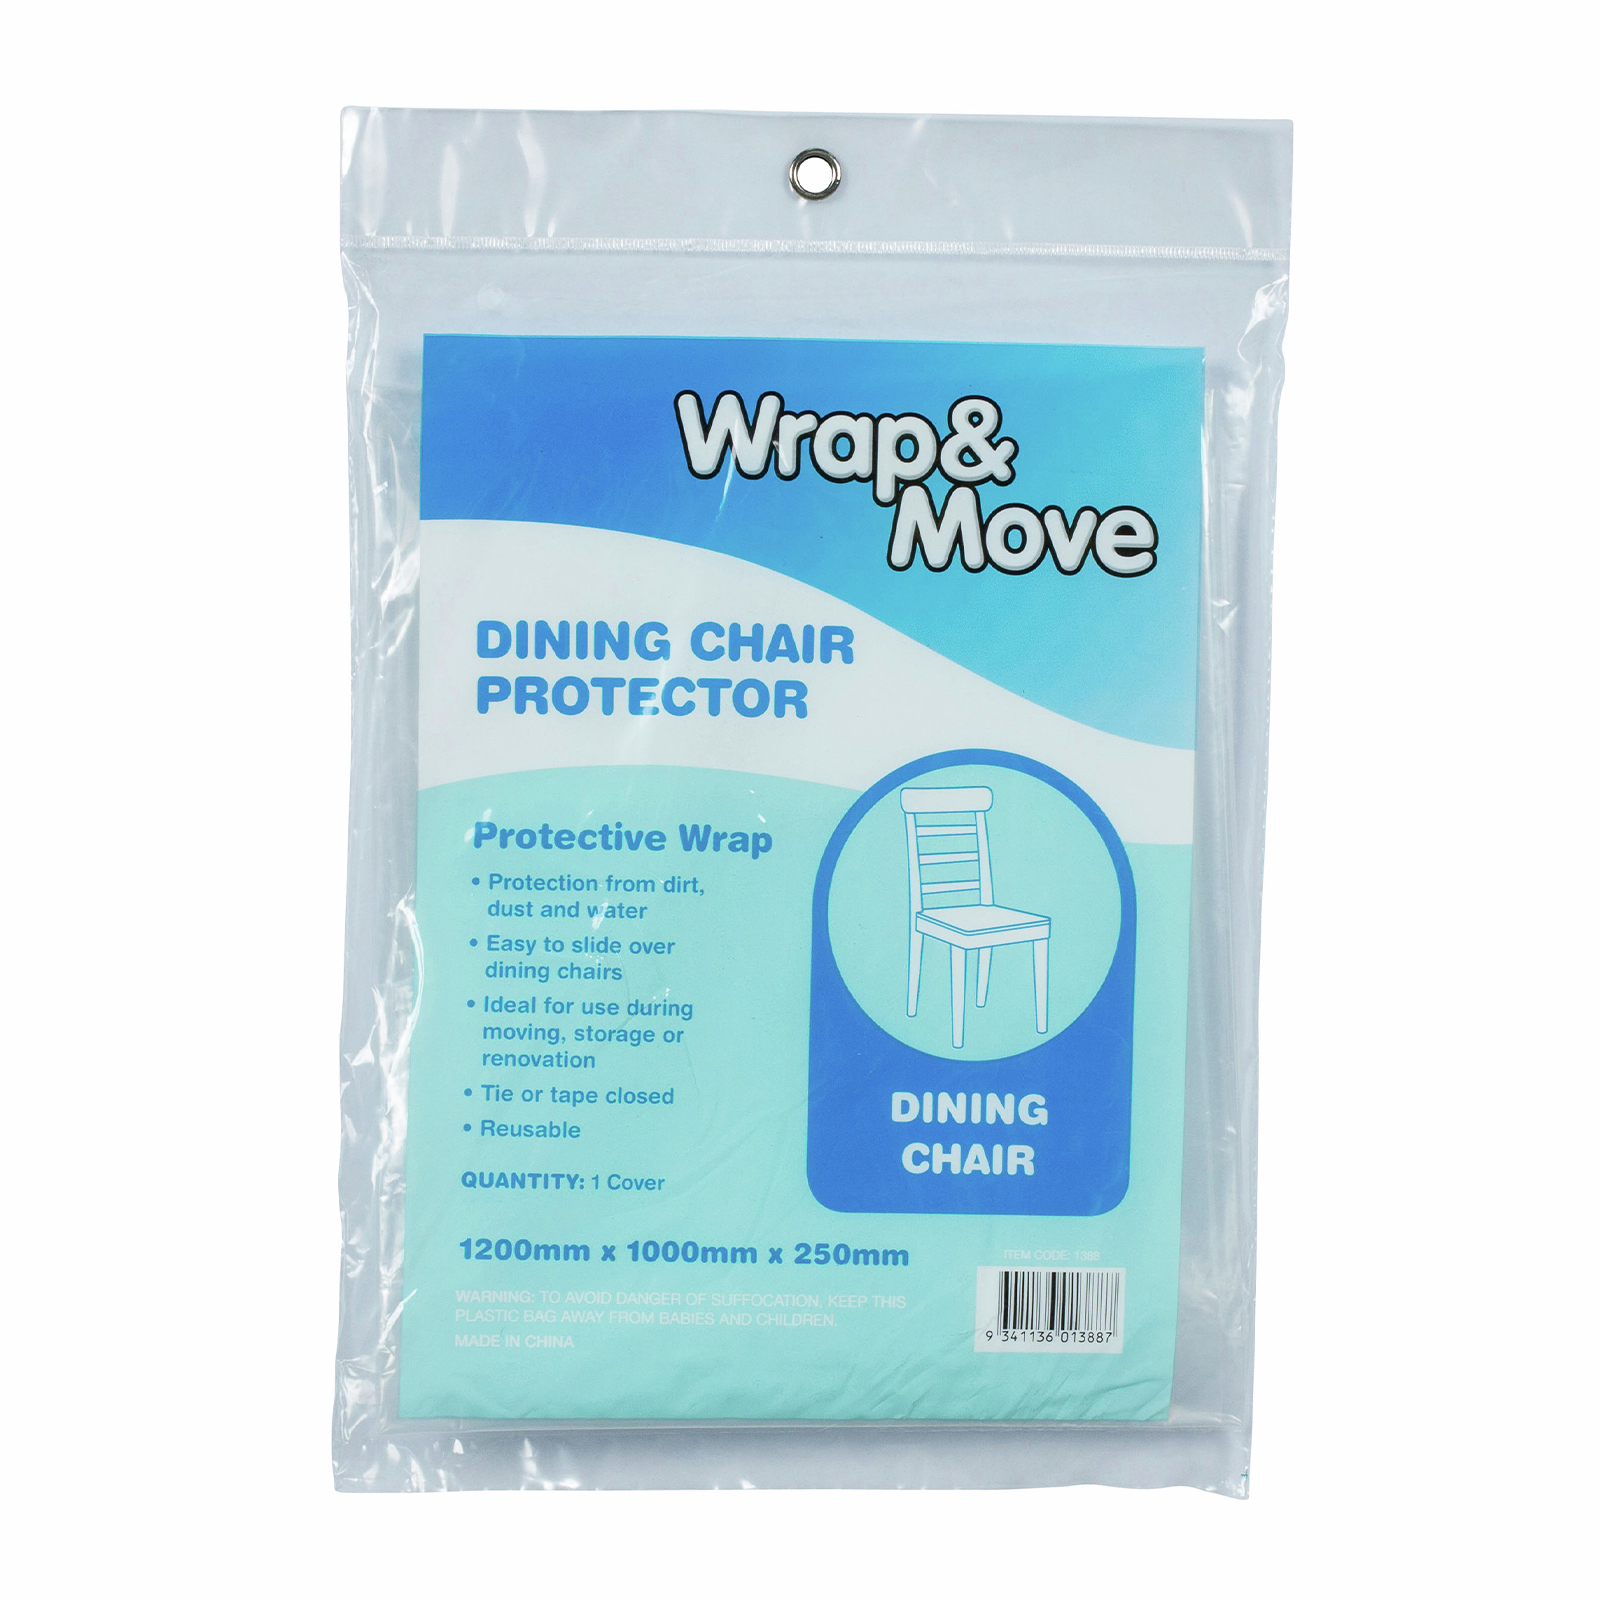 Wrap & Move Clear Dining Chair Protector